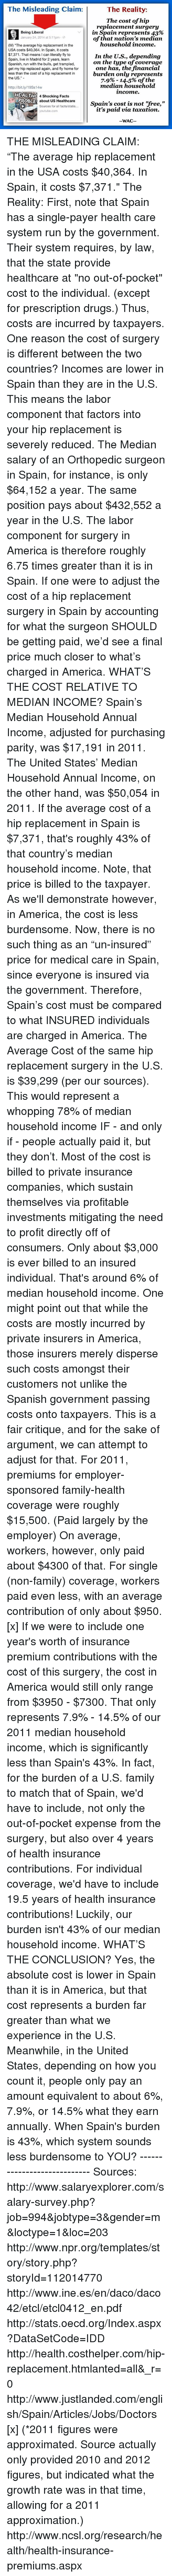 """median: The Misleading Claim:  The Reality:  The cost of hip  replacement surgery  in Spain represents 43%  Being Liberal  January 24, 2014 at 5:11pm  of that nation's median  household income  USA costs $40,364. In Spain, it costs  $7,371. That means l can literally fly to  In the U.S., depending  Spain, live in Madrid for 2 years, learn  on the type of coverage  Spanish, run with the bulls, get trampled,  one has, the financial  get my hip replaced again, and fly home for  less than the cost of a hip replacement in  burden only represents  the US.""""  7.9% 14.5% of the  median household  http://bit.ly/19Ss14w  income.  HEALTH  4 Shocking Facts  PROBLE  about US Healthcare  Sources for all facts/statis...  Spain's cost is not """"free,""""  it's paid via taxation.  youtube.com  WAC THE MISLEADING CLAIM:  """"The average hip replacement in the USA costs $40,364. In Spain, it costs $7,371.""""  The Reality: First, note that Spain has a single-payer health care system run by the government. Their system requires, by law, that the state provide healthcare at """"no out-of-pocket"""" cost to the individual. (except for prescription drugs.) Thus, costs are incurred by taxpayers.    One reason the cost of surgery is different between the two countries?  Incomes are lower in Spain than they are in the U.S. This means the labor component that factors into your hip replacement is severely reduced.  The Median salary of an Orthopedic surgeon in Spain, for instance, is only $64,152 a year. The same position pays about $432,552 a year in the U.S.  The labor component for surgery in America is therefore roughly 6.75 times greater than it is in Spain. If one were to adjust the cost of a hip replacement surgery in Spain by accounting for what the surgeon SHOULD be getting paid, we'd see a final price much closer to what's charged in America.    WHAT'S THE COST RELATIVE TO MEDIAN INCOME?  Spain's Median Household Annual Income, adjusted for purchasing parity, was $17,191 in 2011. The United States' Me"""